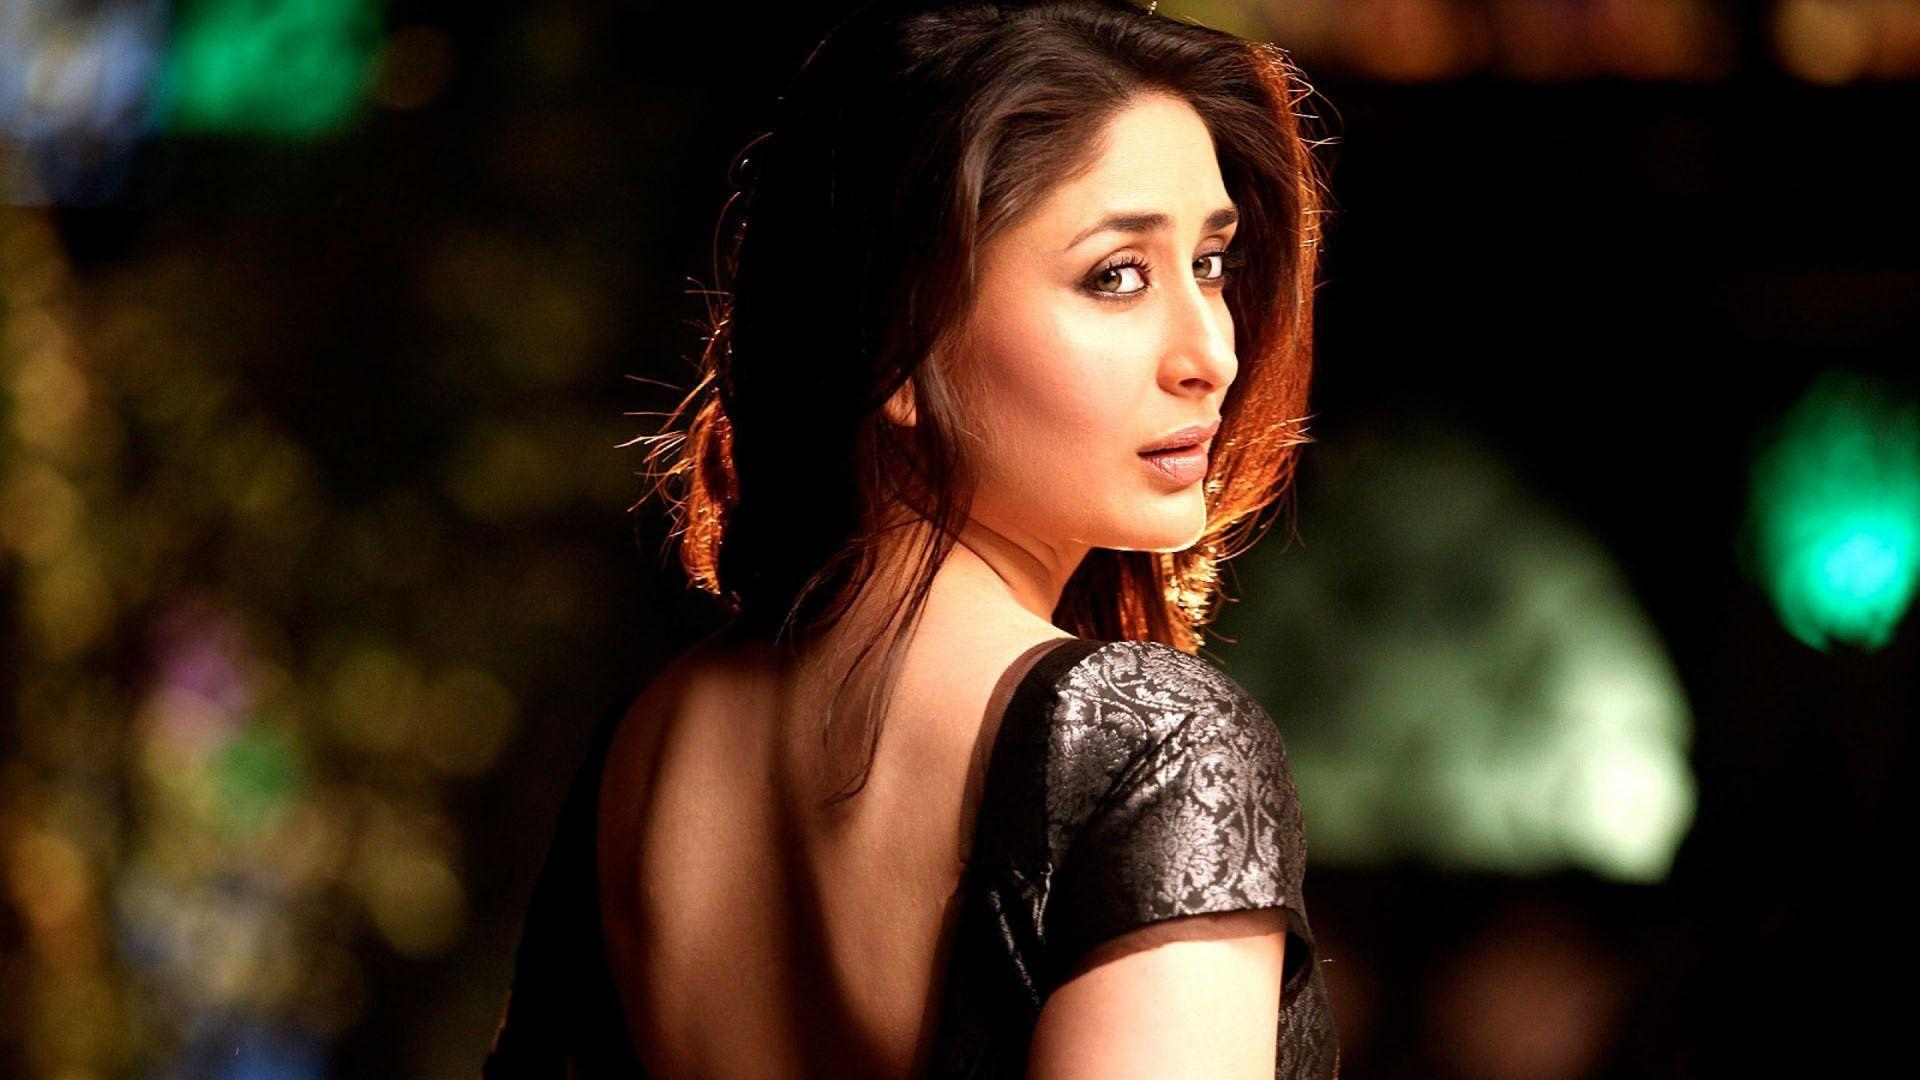 Wallpaper download heroine - Kareena Kapoor Bollywood Actress Hd Wallpapers 3766 Full Hd